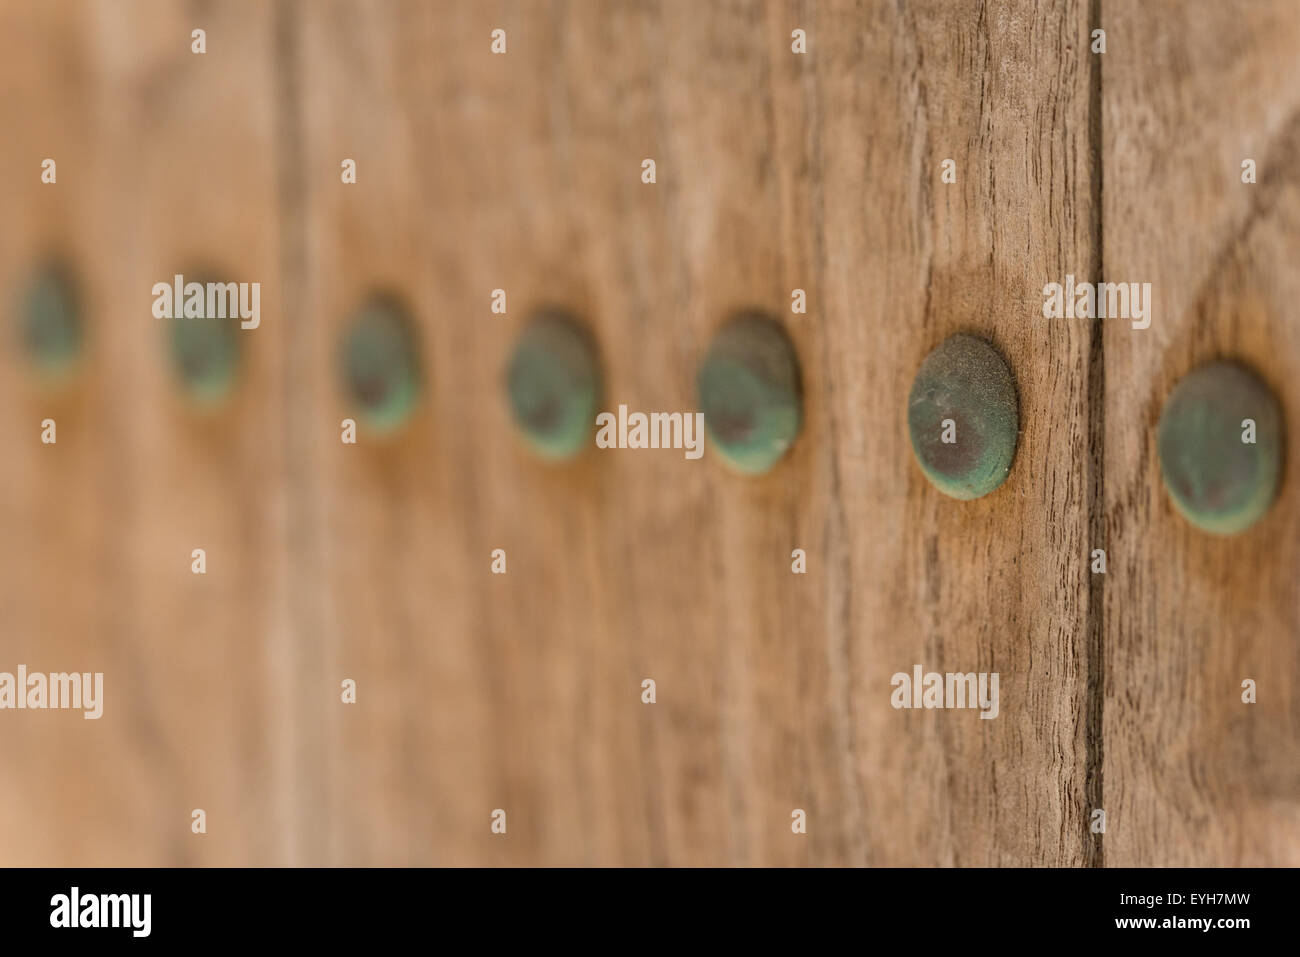 A macro shot of old copper nails which haved turned green due to oxidation on an old wooden door. - Stock Image